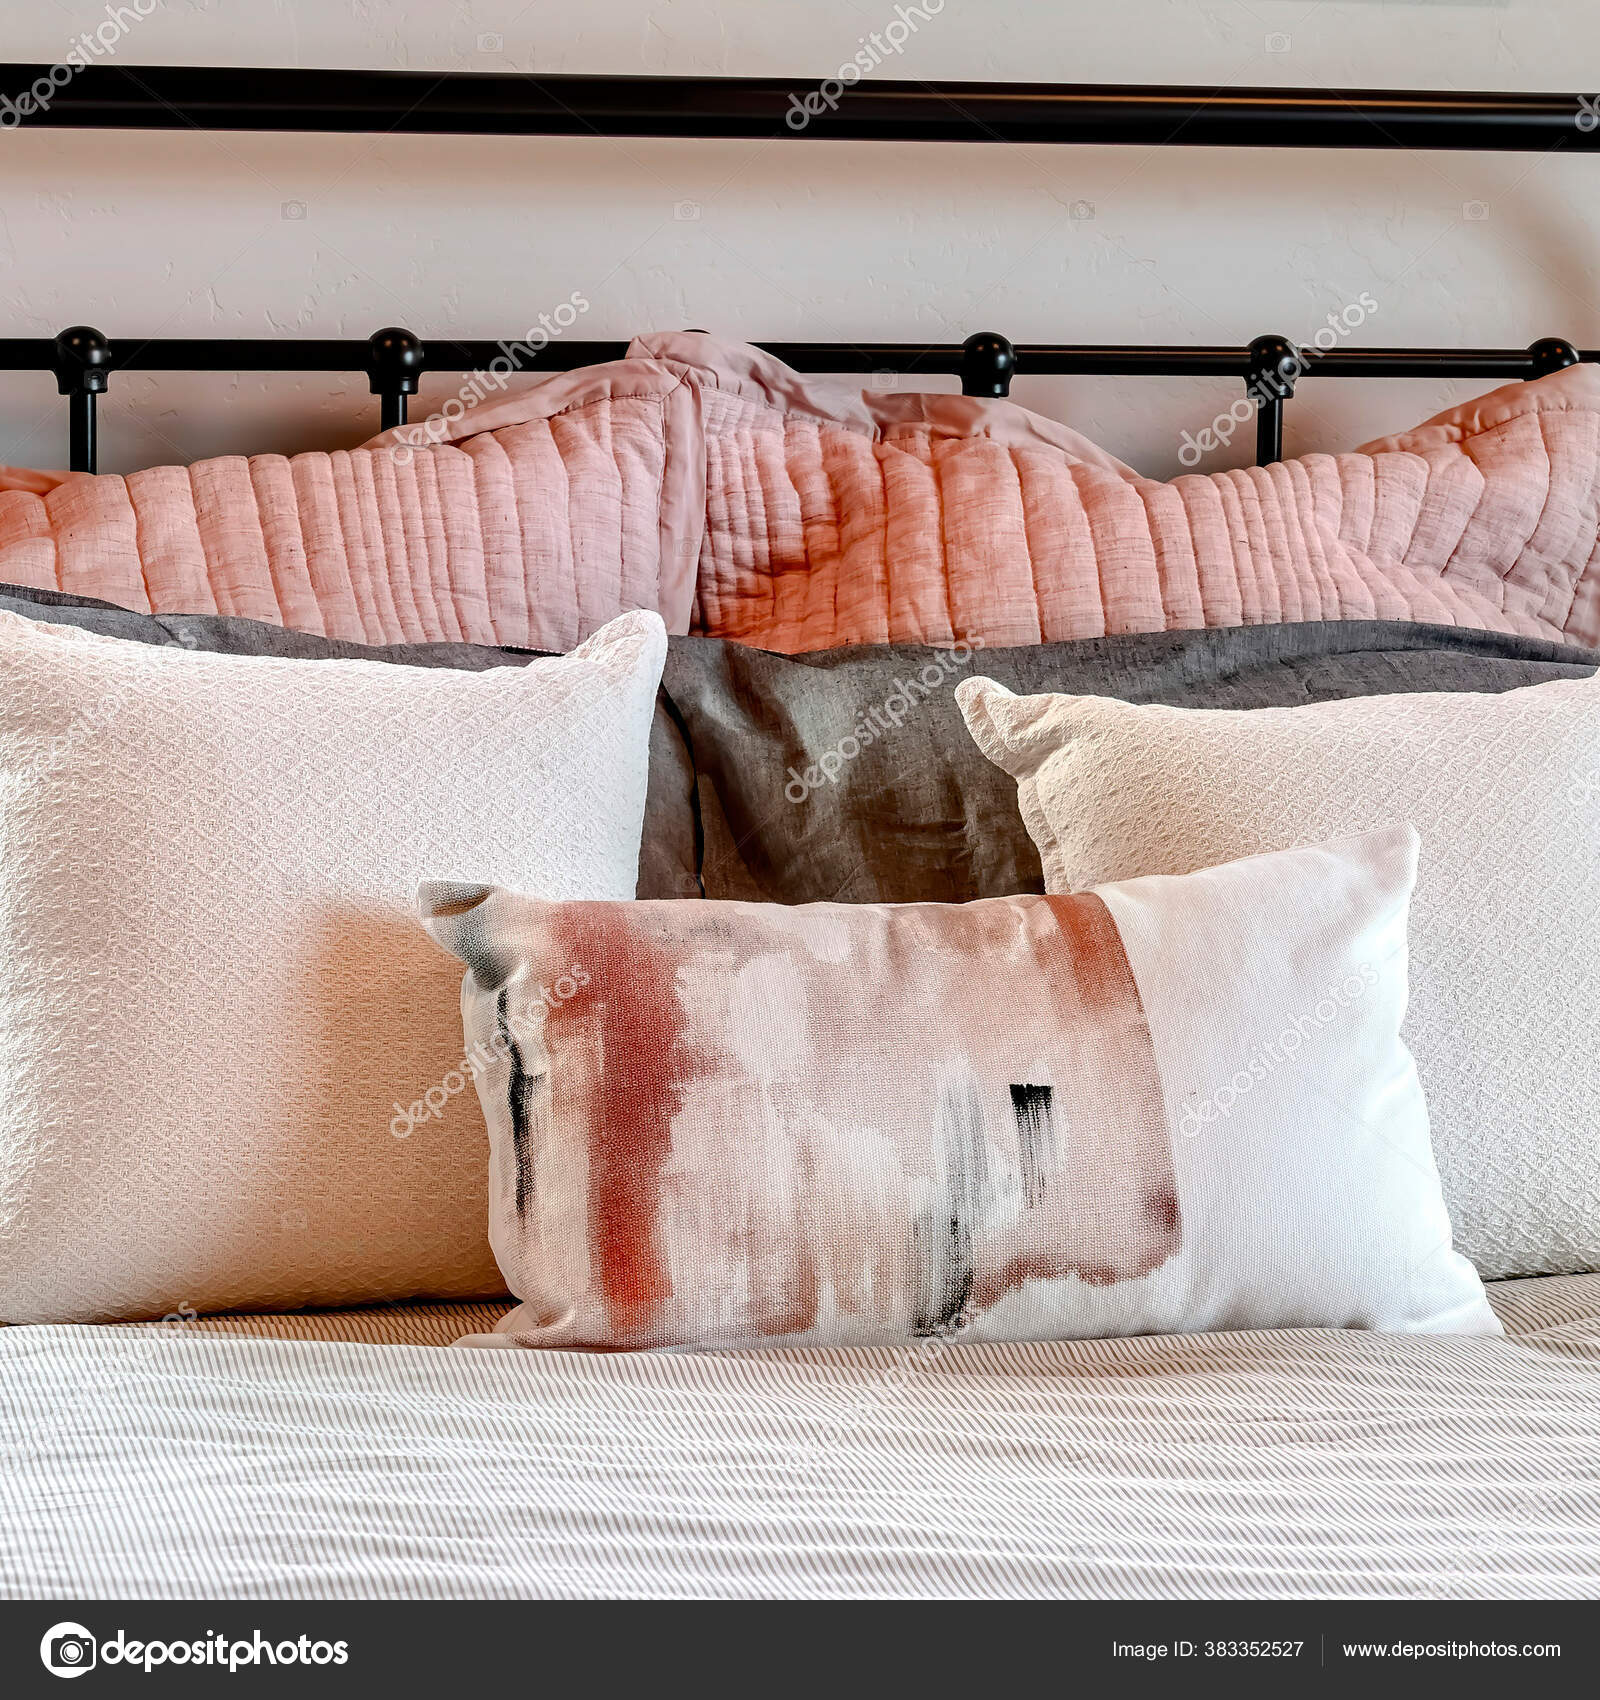 Square Frame Single Bed With Fluffy Pillows Against Black Metal Headboard Inside Bedroom Stock Photo C Dropthepress Gmail Com 383352527